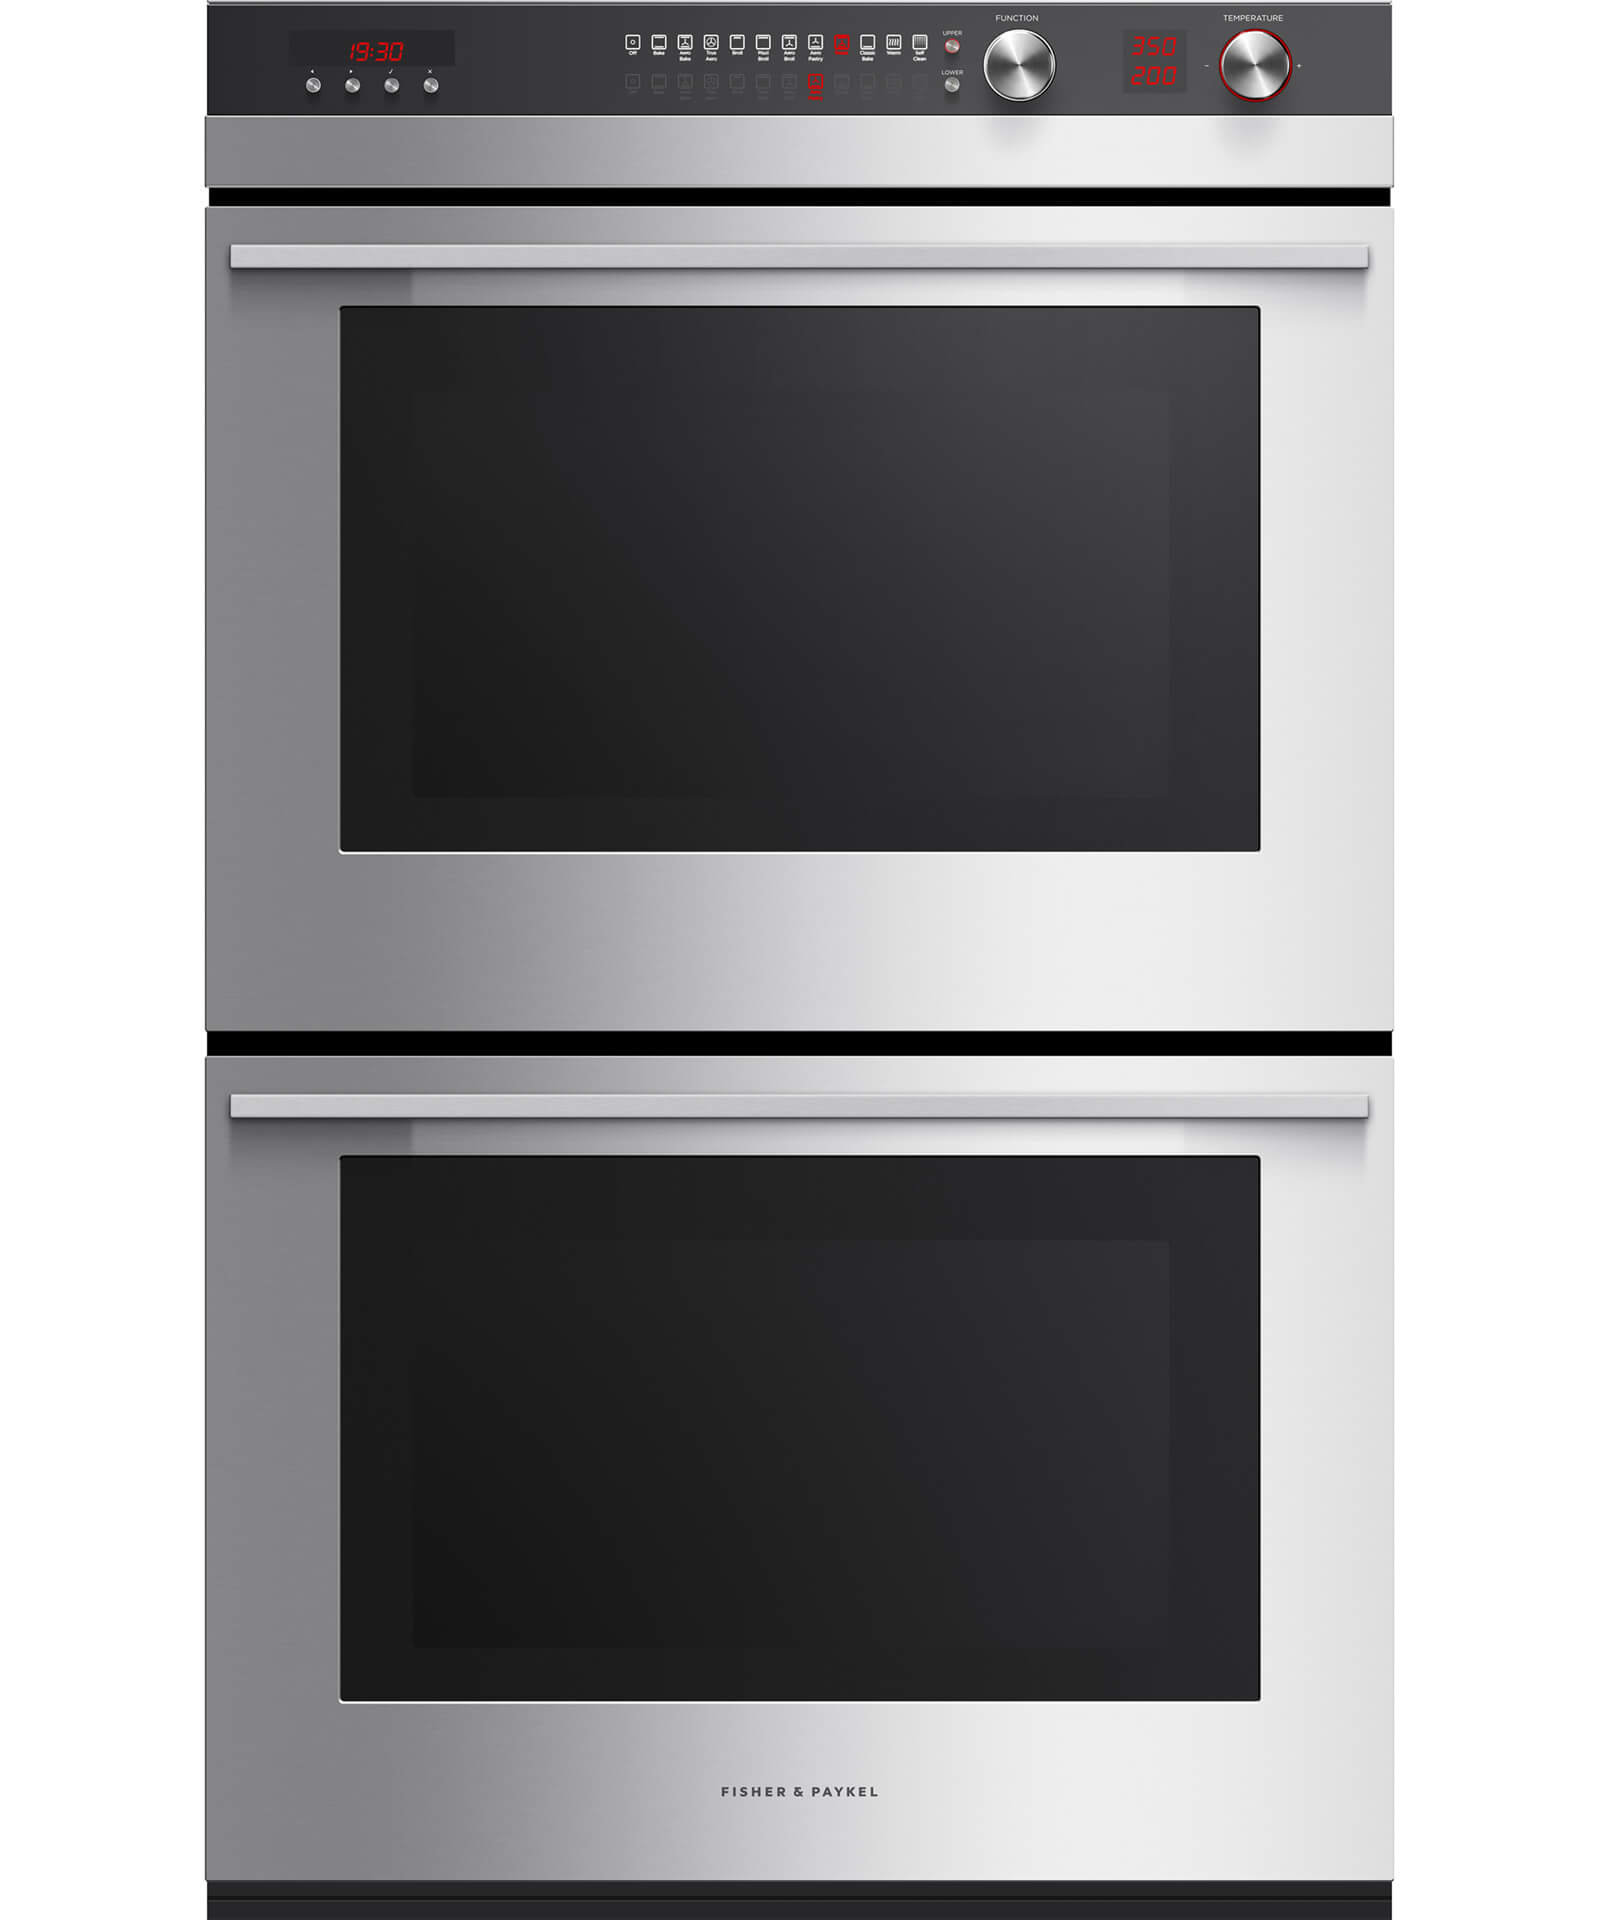 "OB30DTEPX3_N - 30"" 11 Function Double Built-in Oven - 81516"